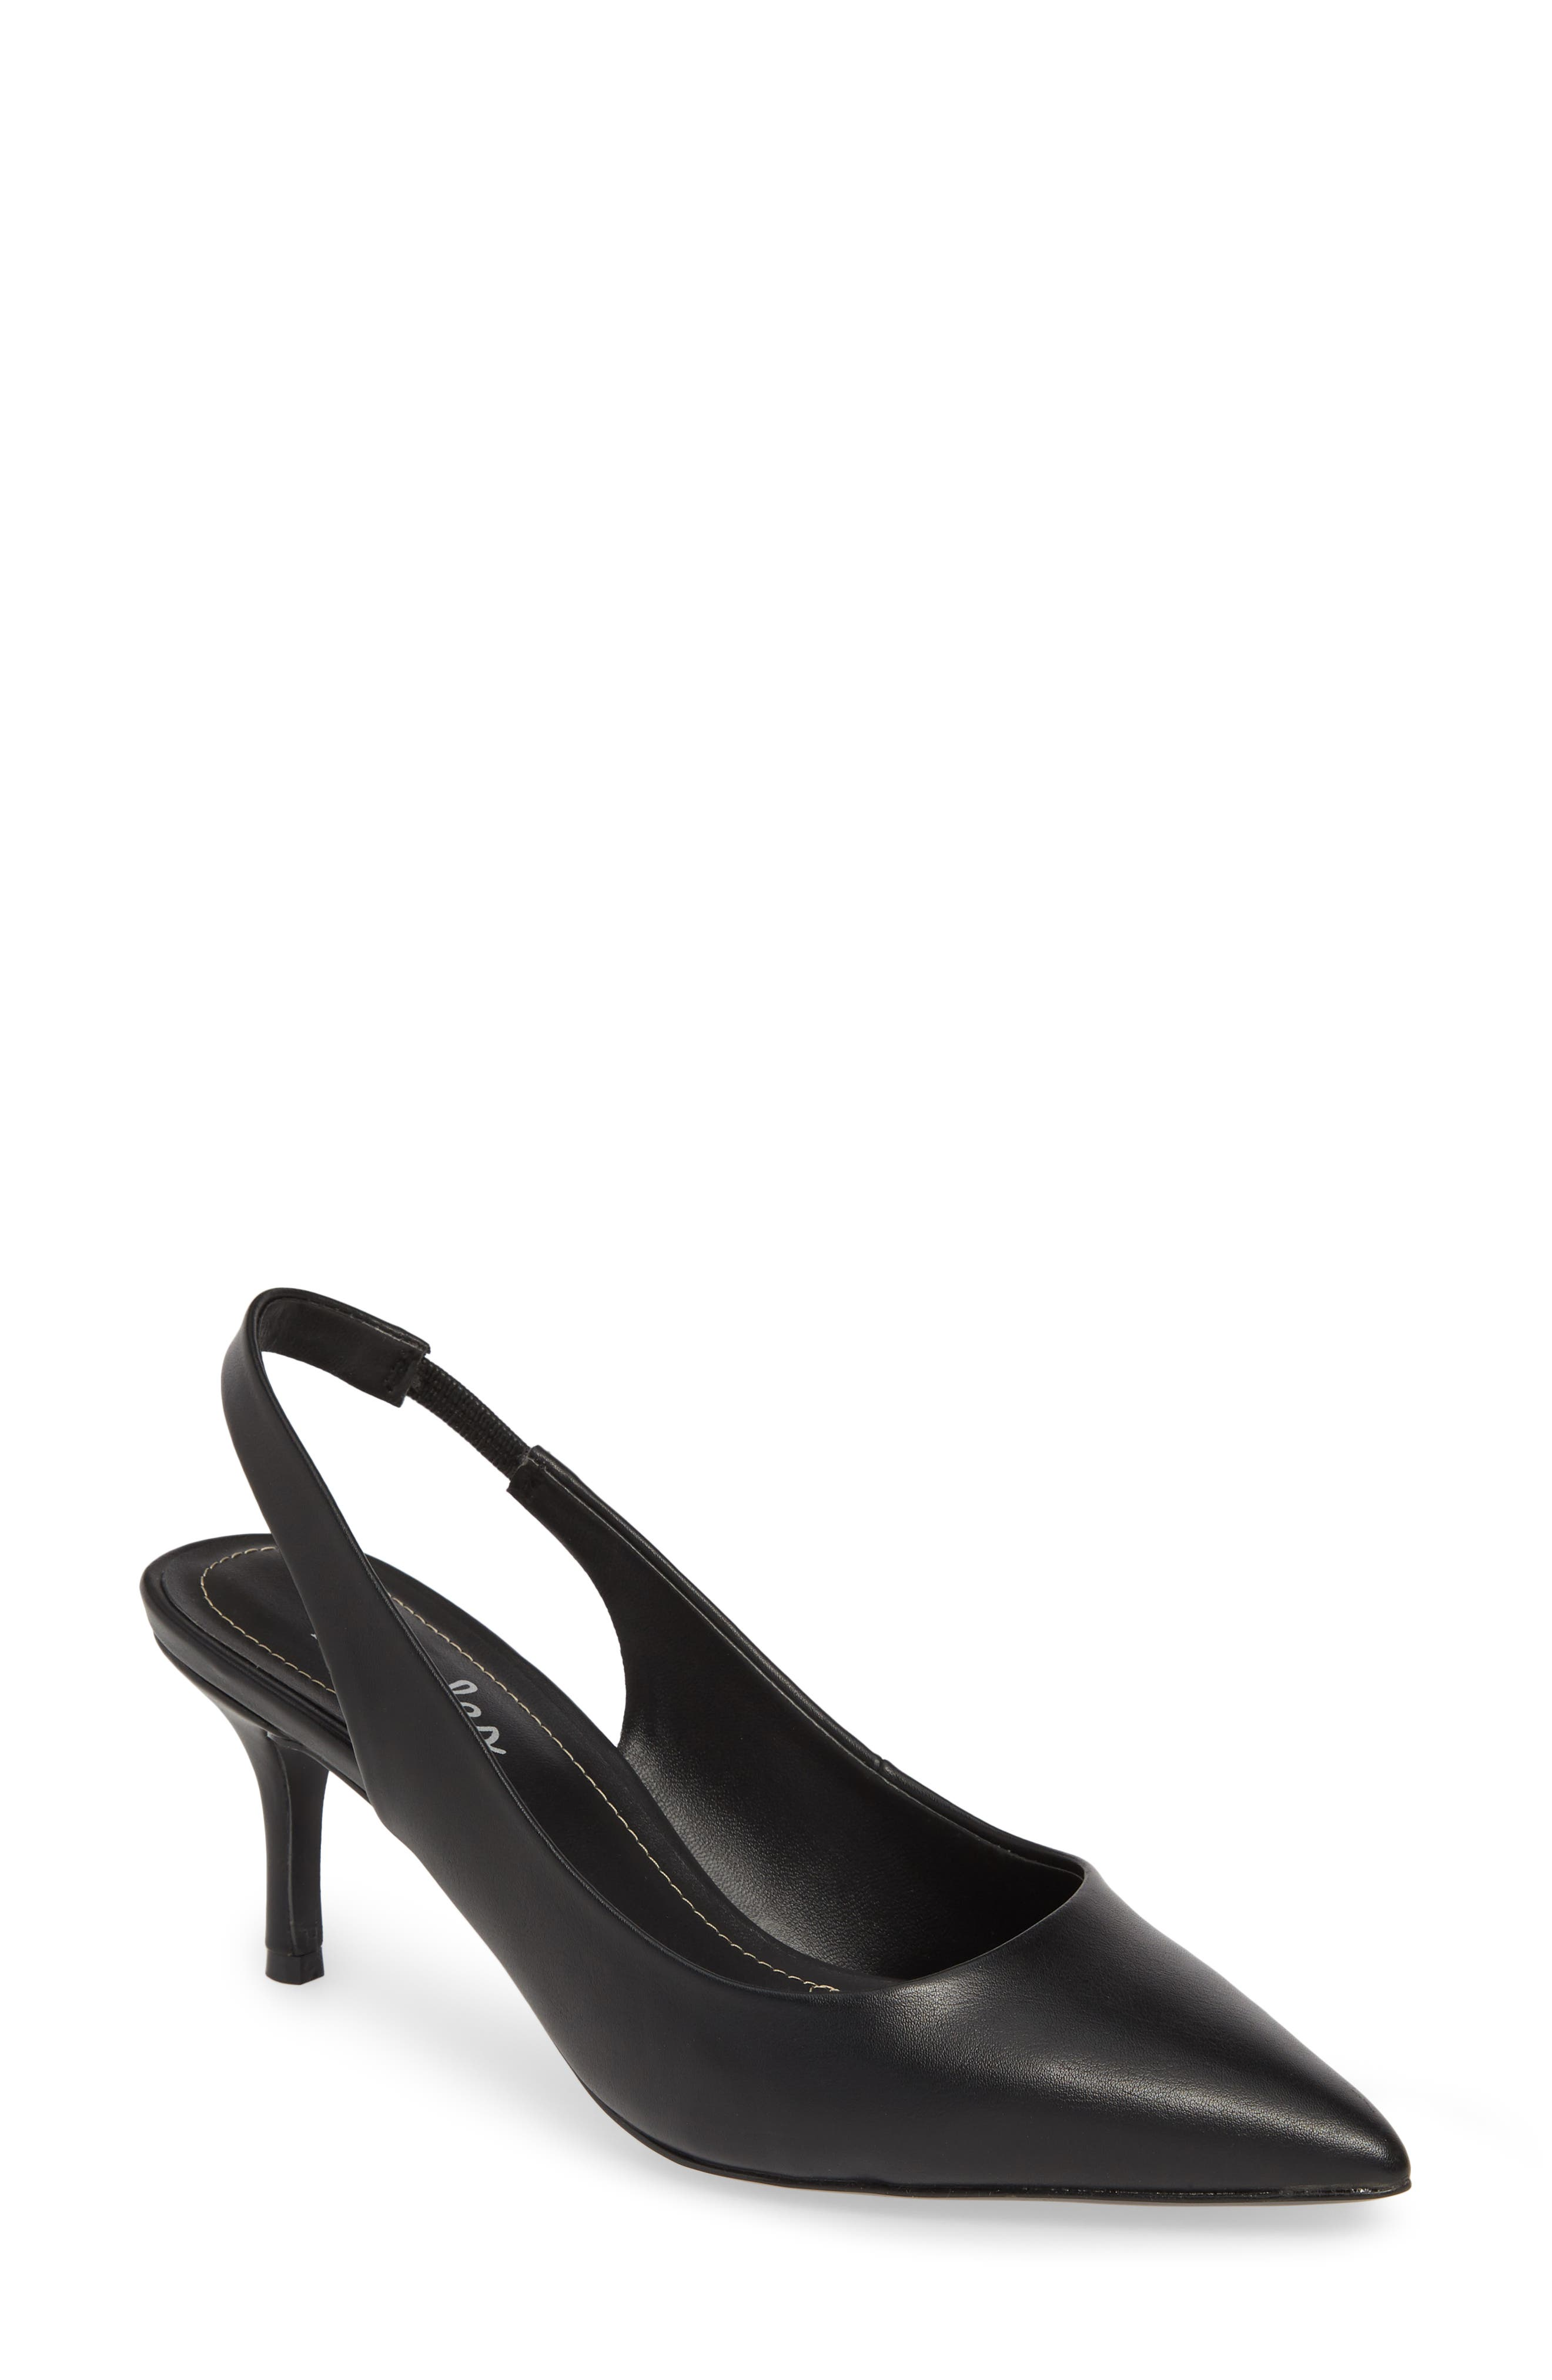 CHARLES BY CHARLES DAVID Amy Slingback Pump, Main, color, BLACK FAUX LEATHER